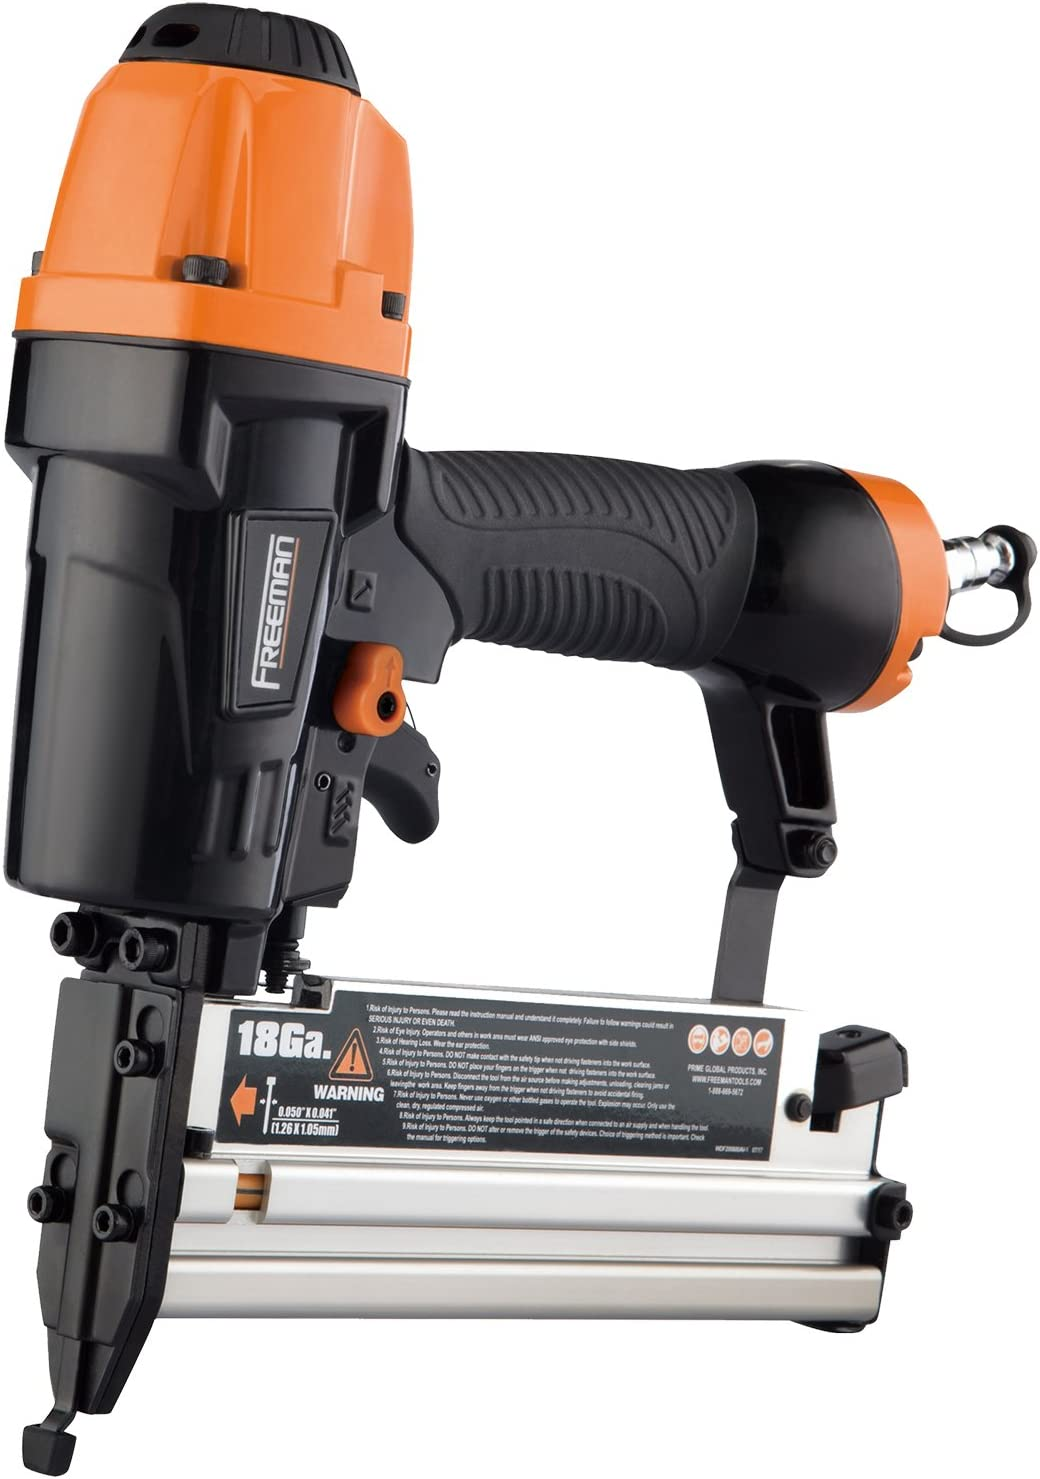 Freeman PXL31 3in1 16 & 18 Gauge Finish Nailer & Stapler